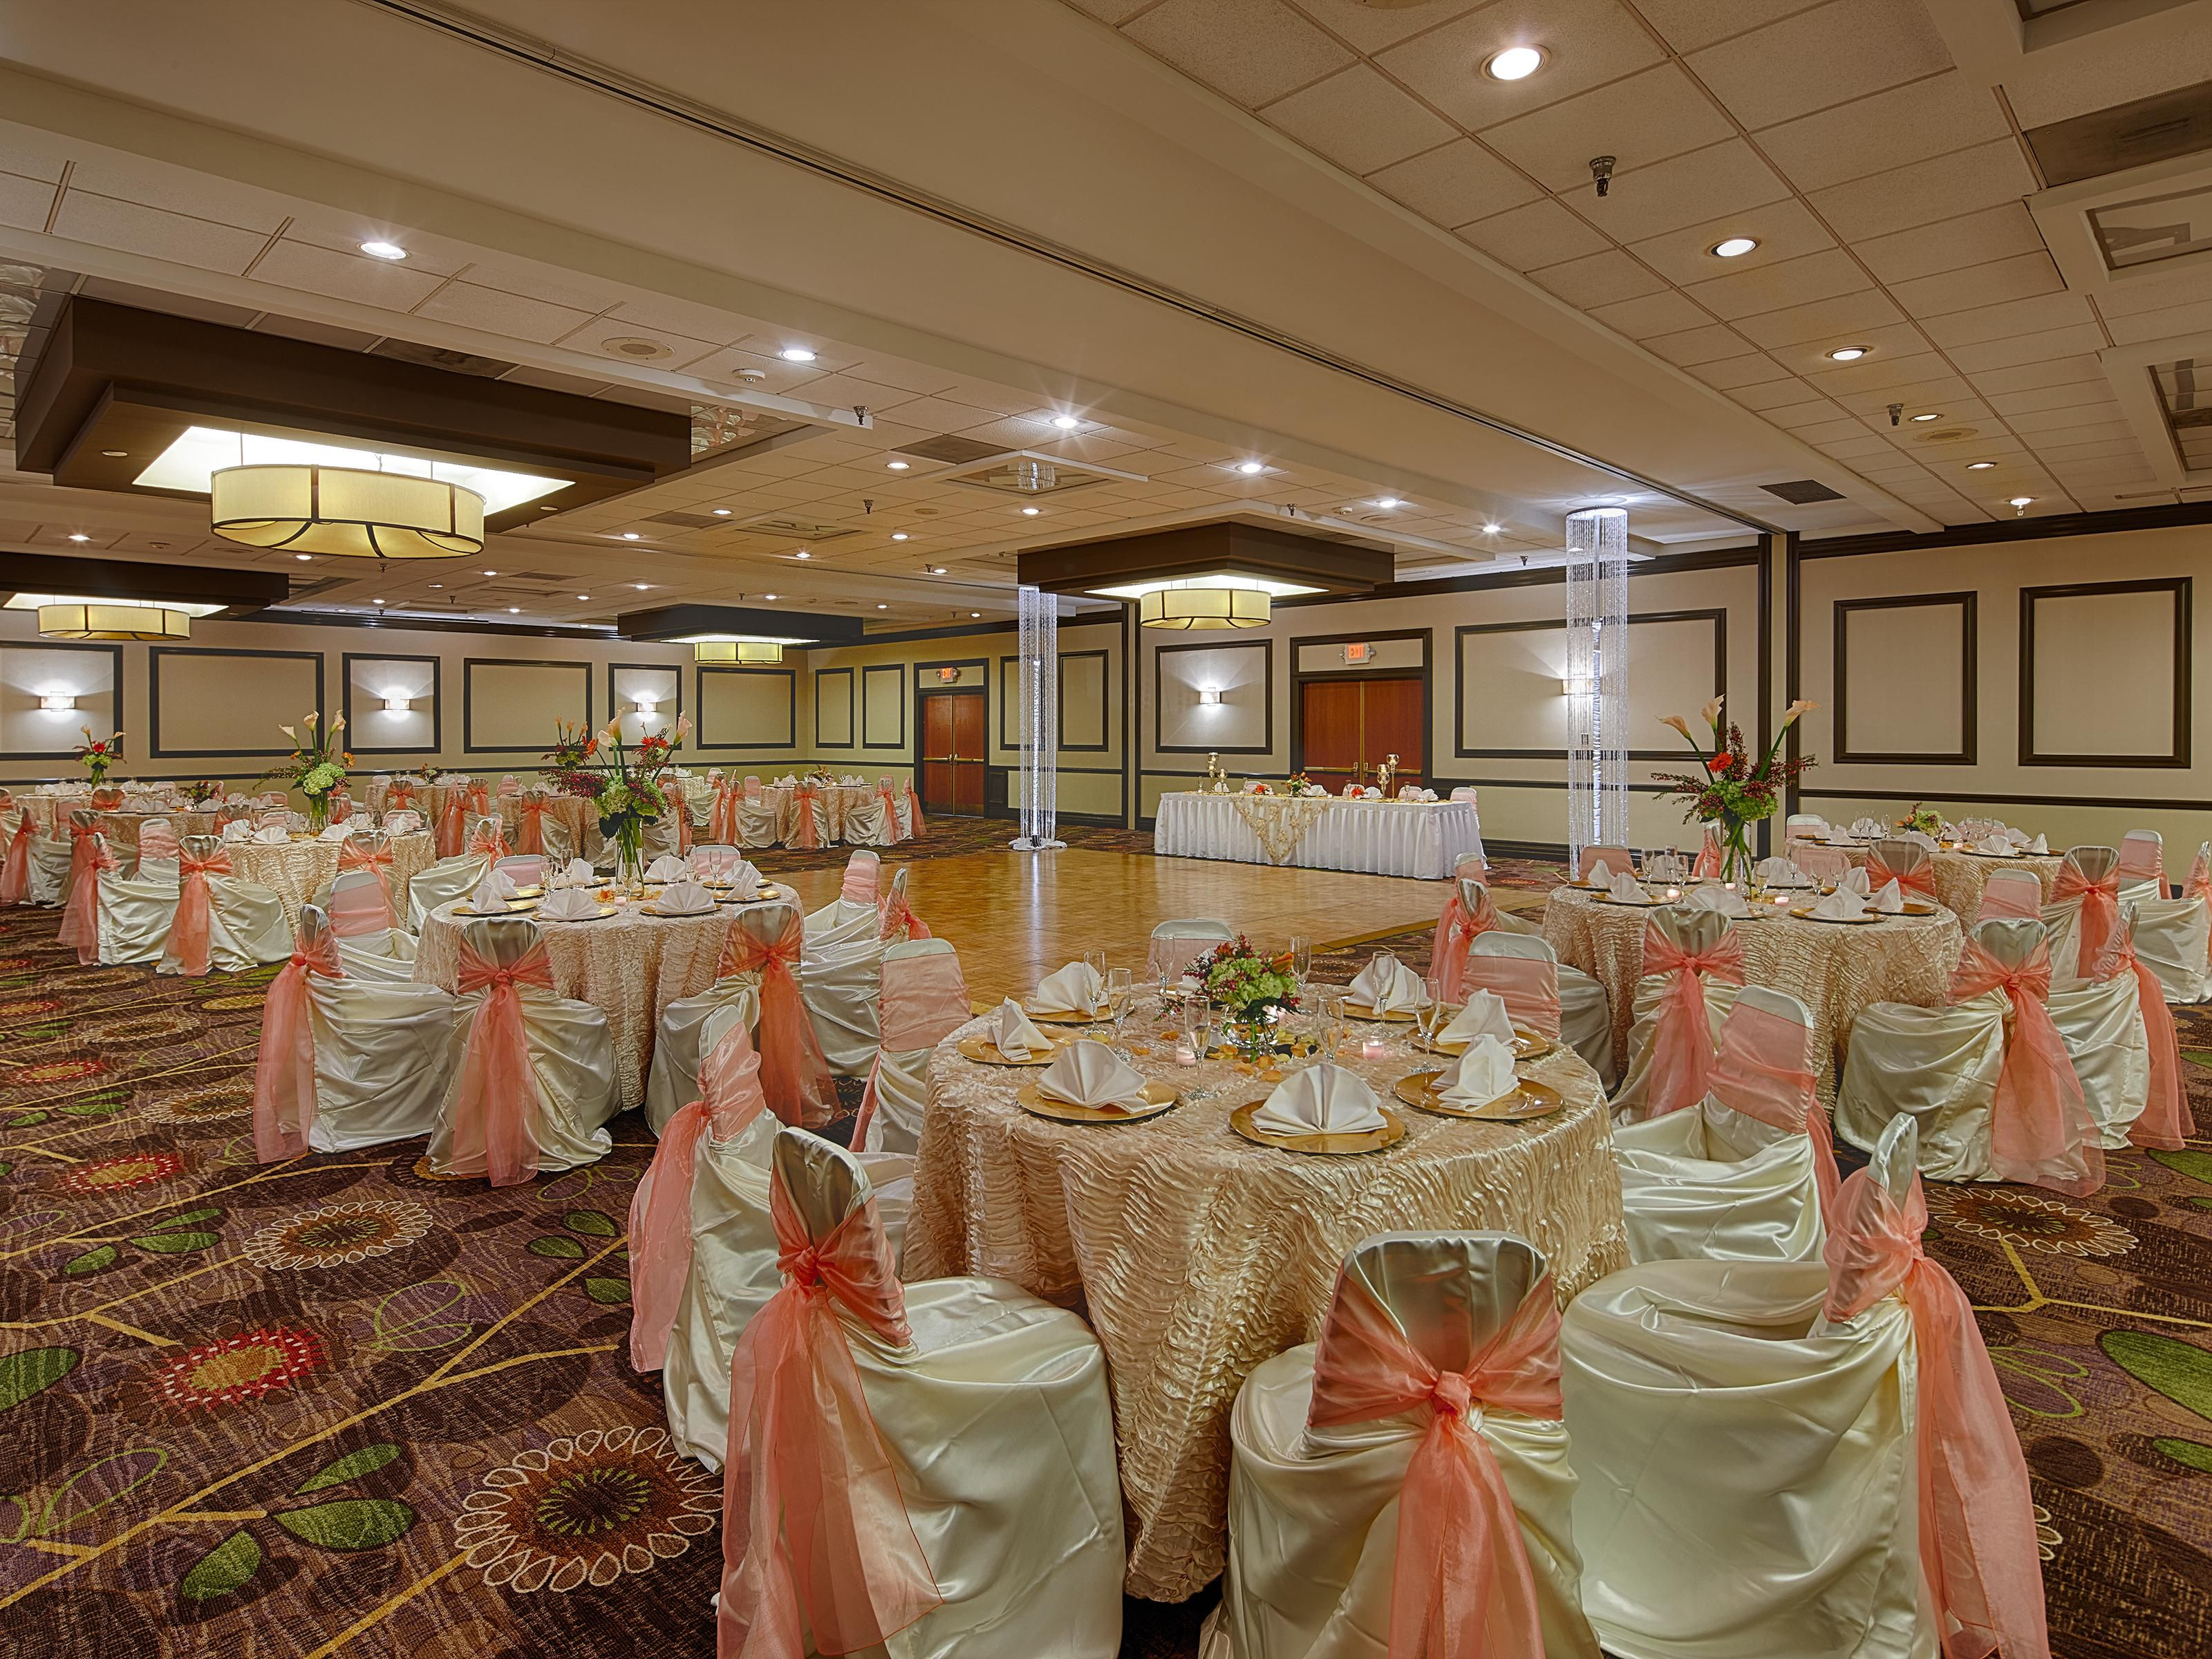 Hill Country Ball Room ready for your conference or special event!